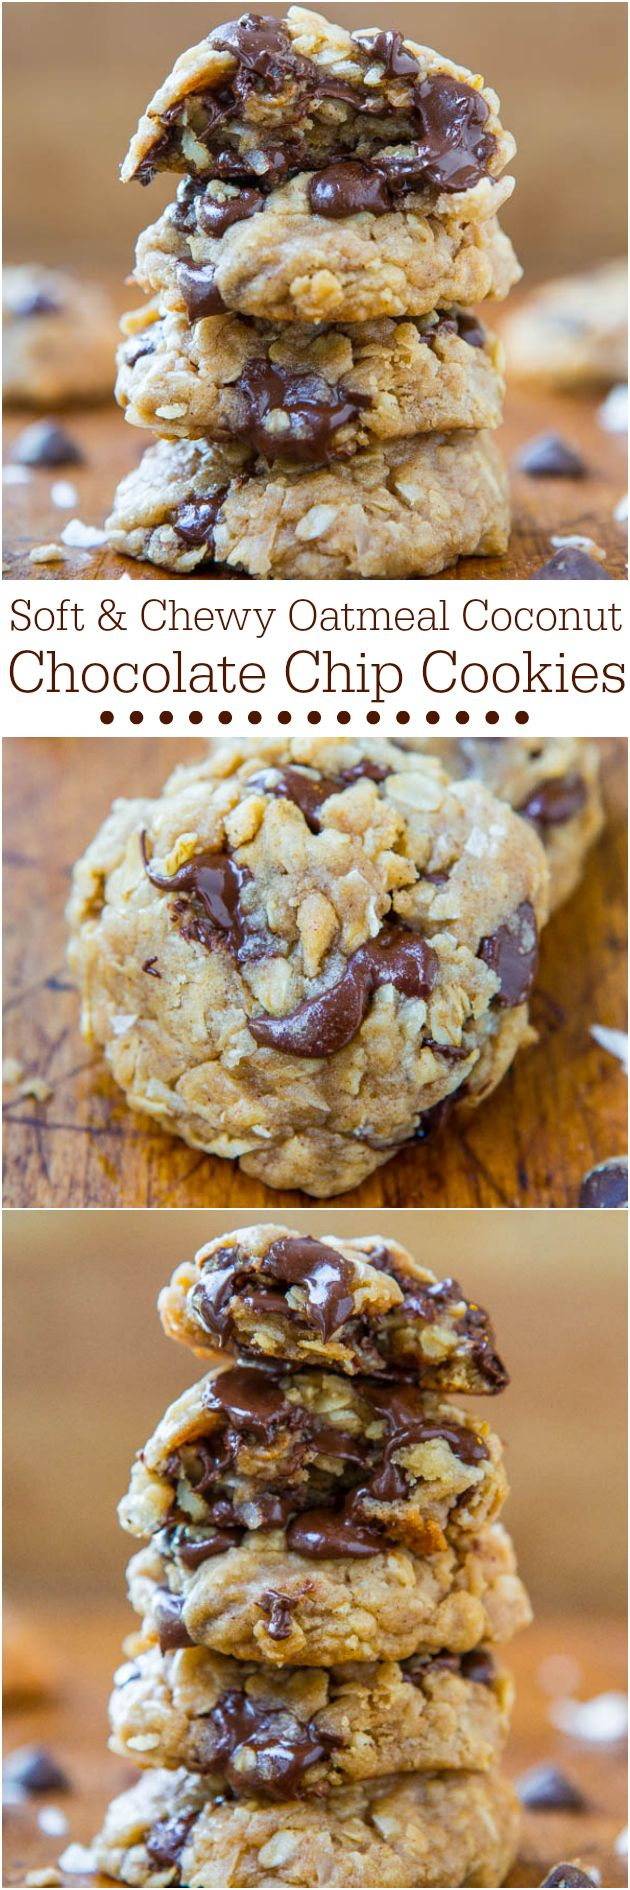 Soft Chewy Oatmeal Coconut Chocolate Chip Cookies - NO BUTTER no mixer used in these easy cookies dripping with chocolate!